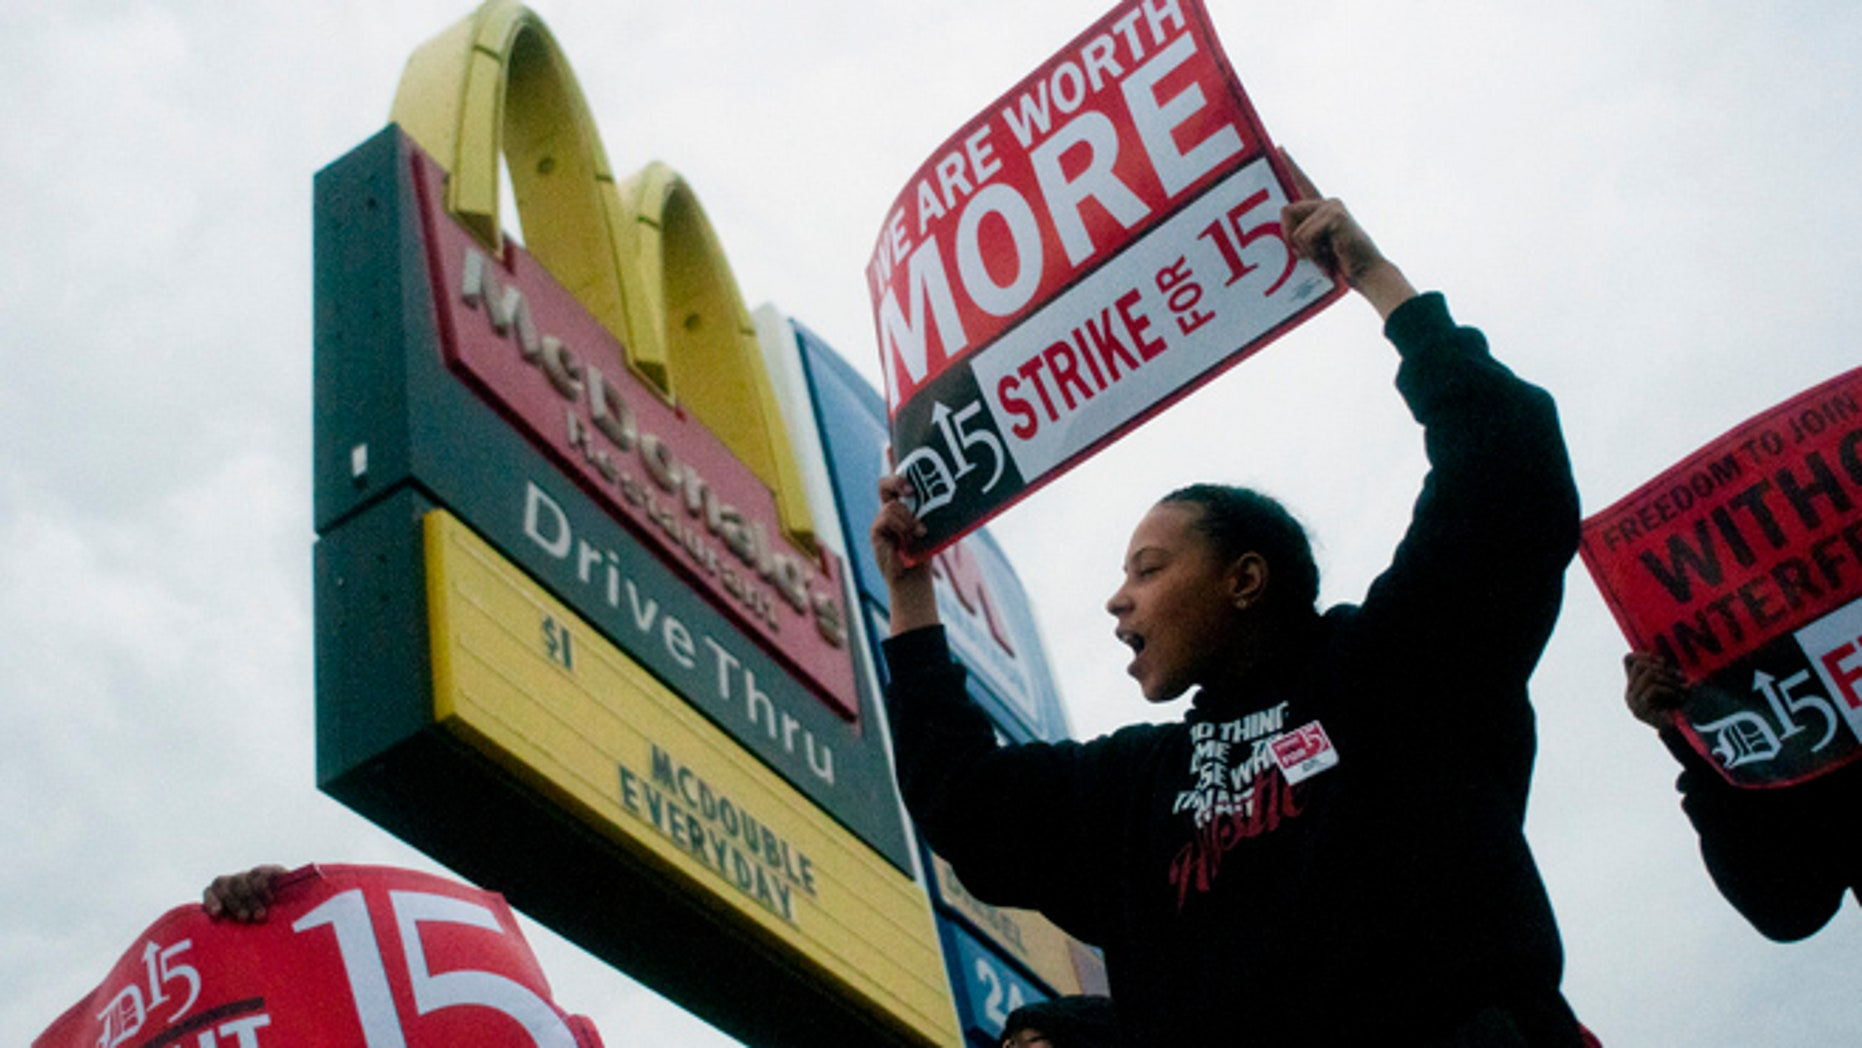 July 31, 2013: Fast-food worker Michelle Osborn, 23, of Flint, Mich. shouts out chants as she and a few dozen others strike outside of a McDonald's restaurant in Flint. A few thousand fast-food workers in seven cities took to the streets demanding better pay, the right to unionize and a more than doubling of the federal minimum hourly wage from $7.25 to $15.